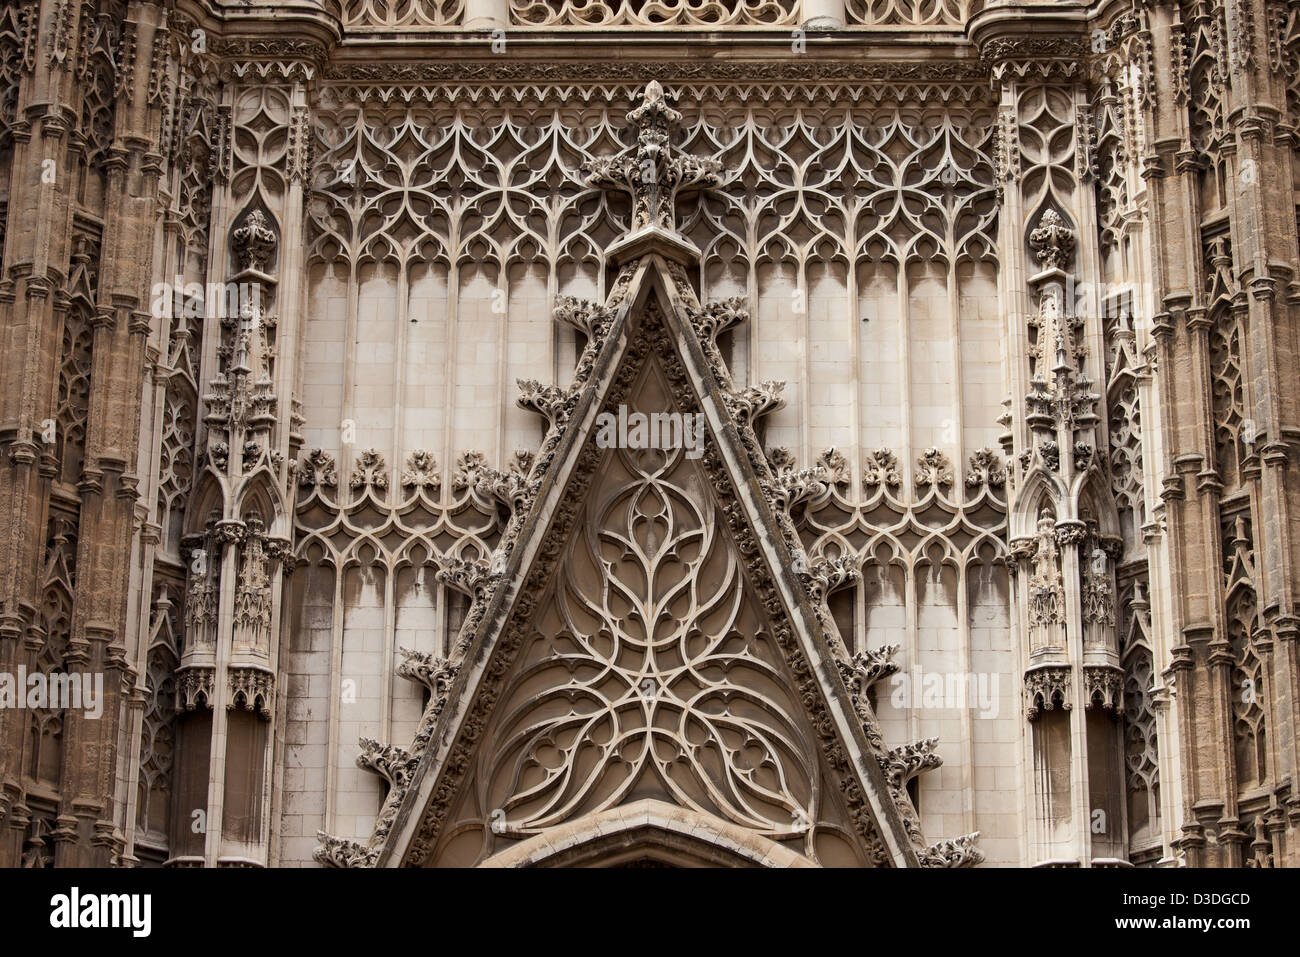 Architectural Details Of The 15 16th Century Gothic Cathedral Seville In Spain Exterior Ornamentation Above Entrance Door